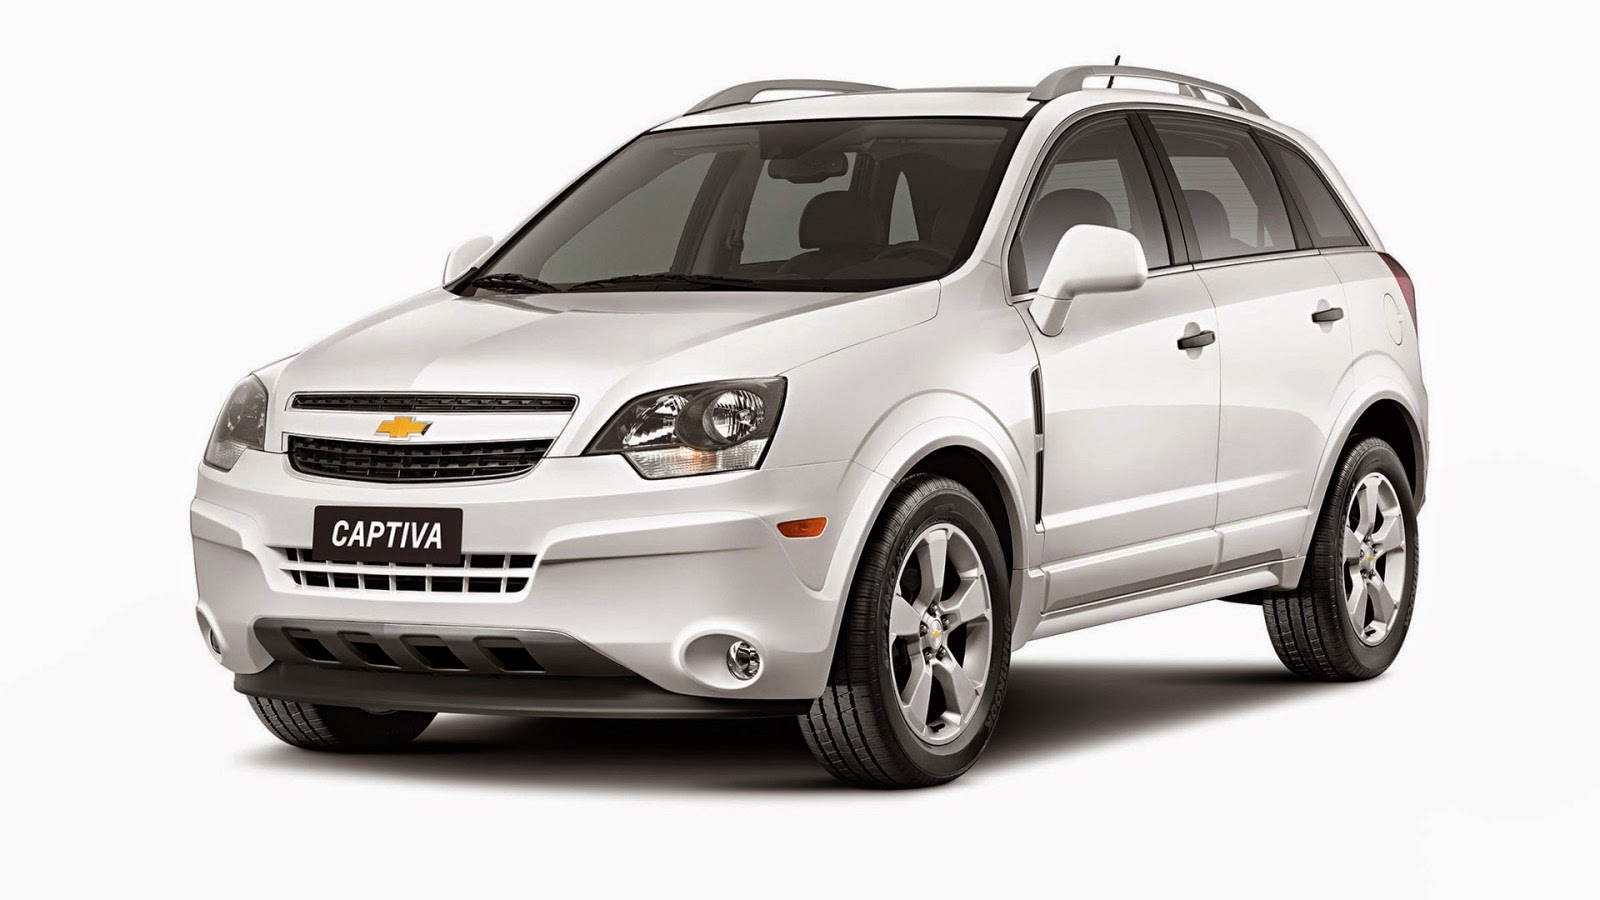 Nova Chevrolet Captiva 2015 estreia no mercado